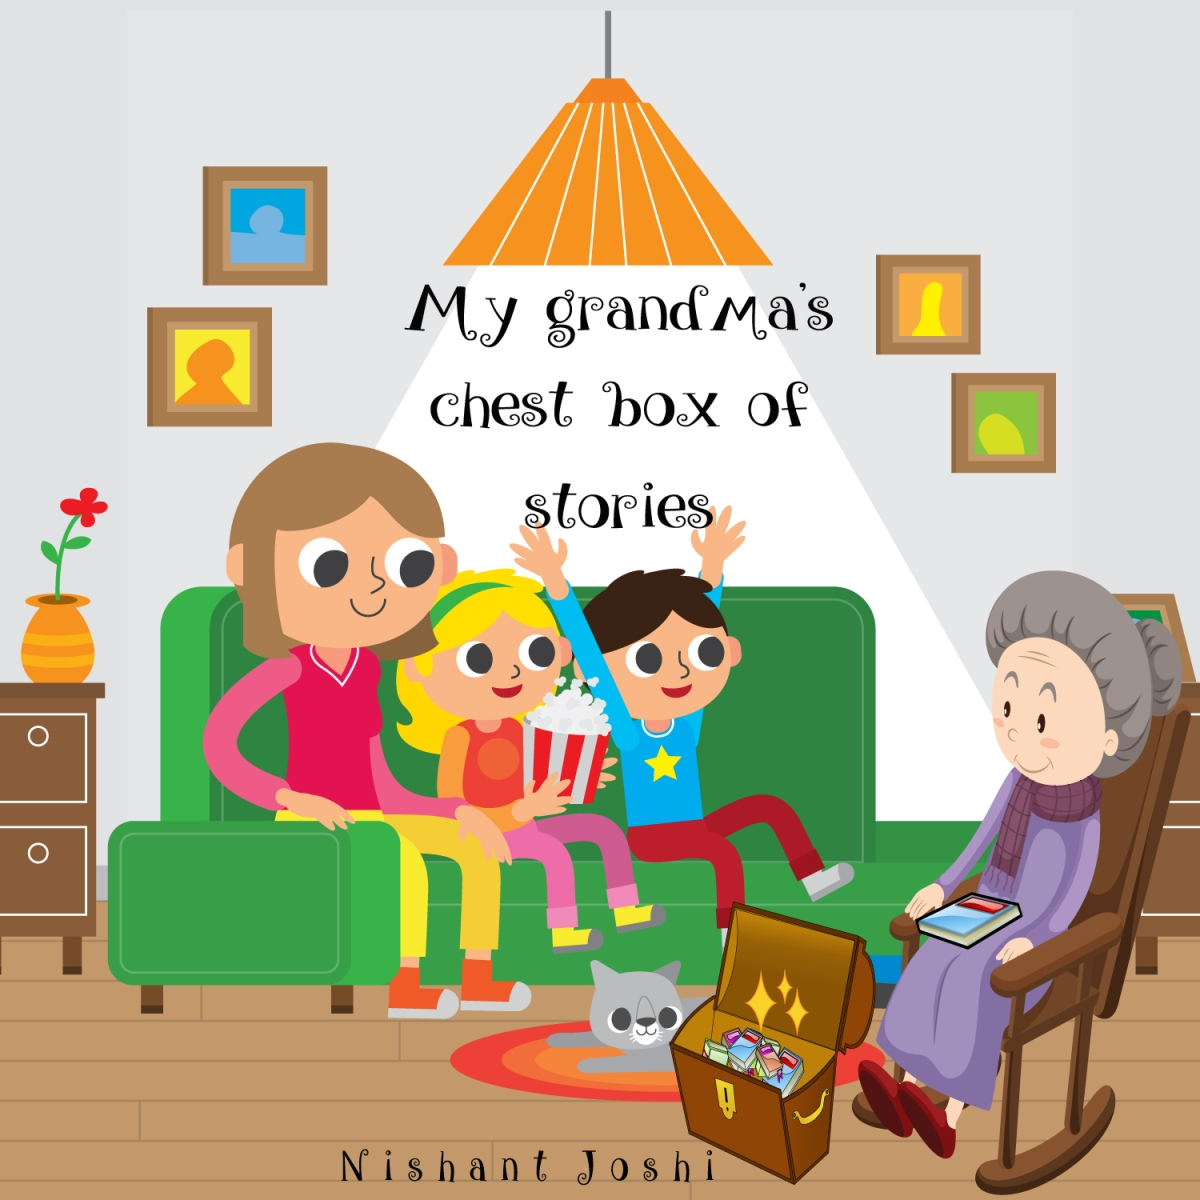 BOOK REVIEW OF MY GRANDMA'S CHEST BOX OF STORIES BY NISHANT JOSHI